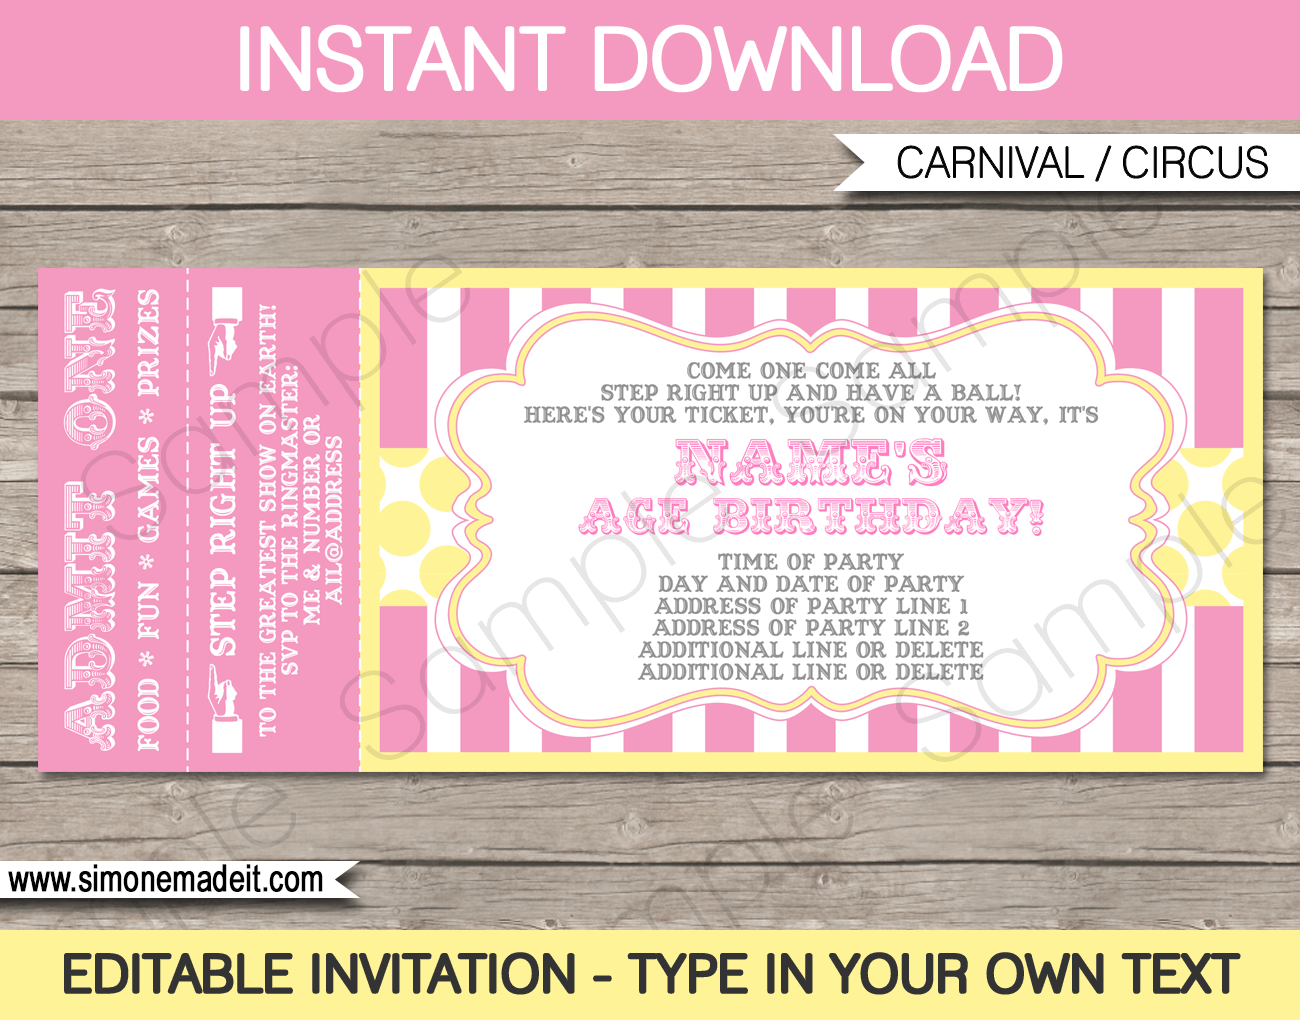 Carnival Birthday Ticket Invitations Template | Carnival Party | Circus Party | Pink & Yellow | Editable and Printable | INSTANT DOWNLOAD $7.50 via simonemadeit.com